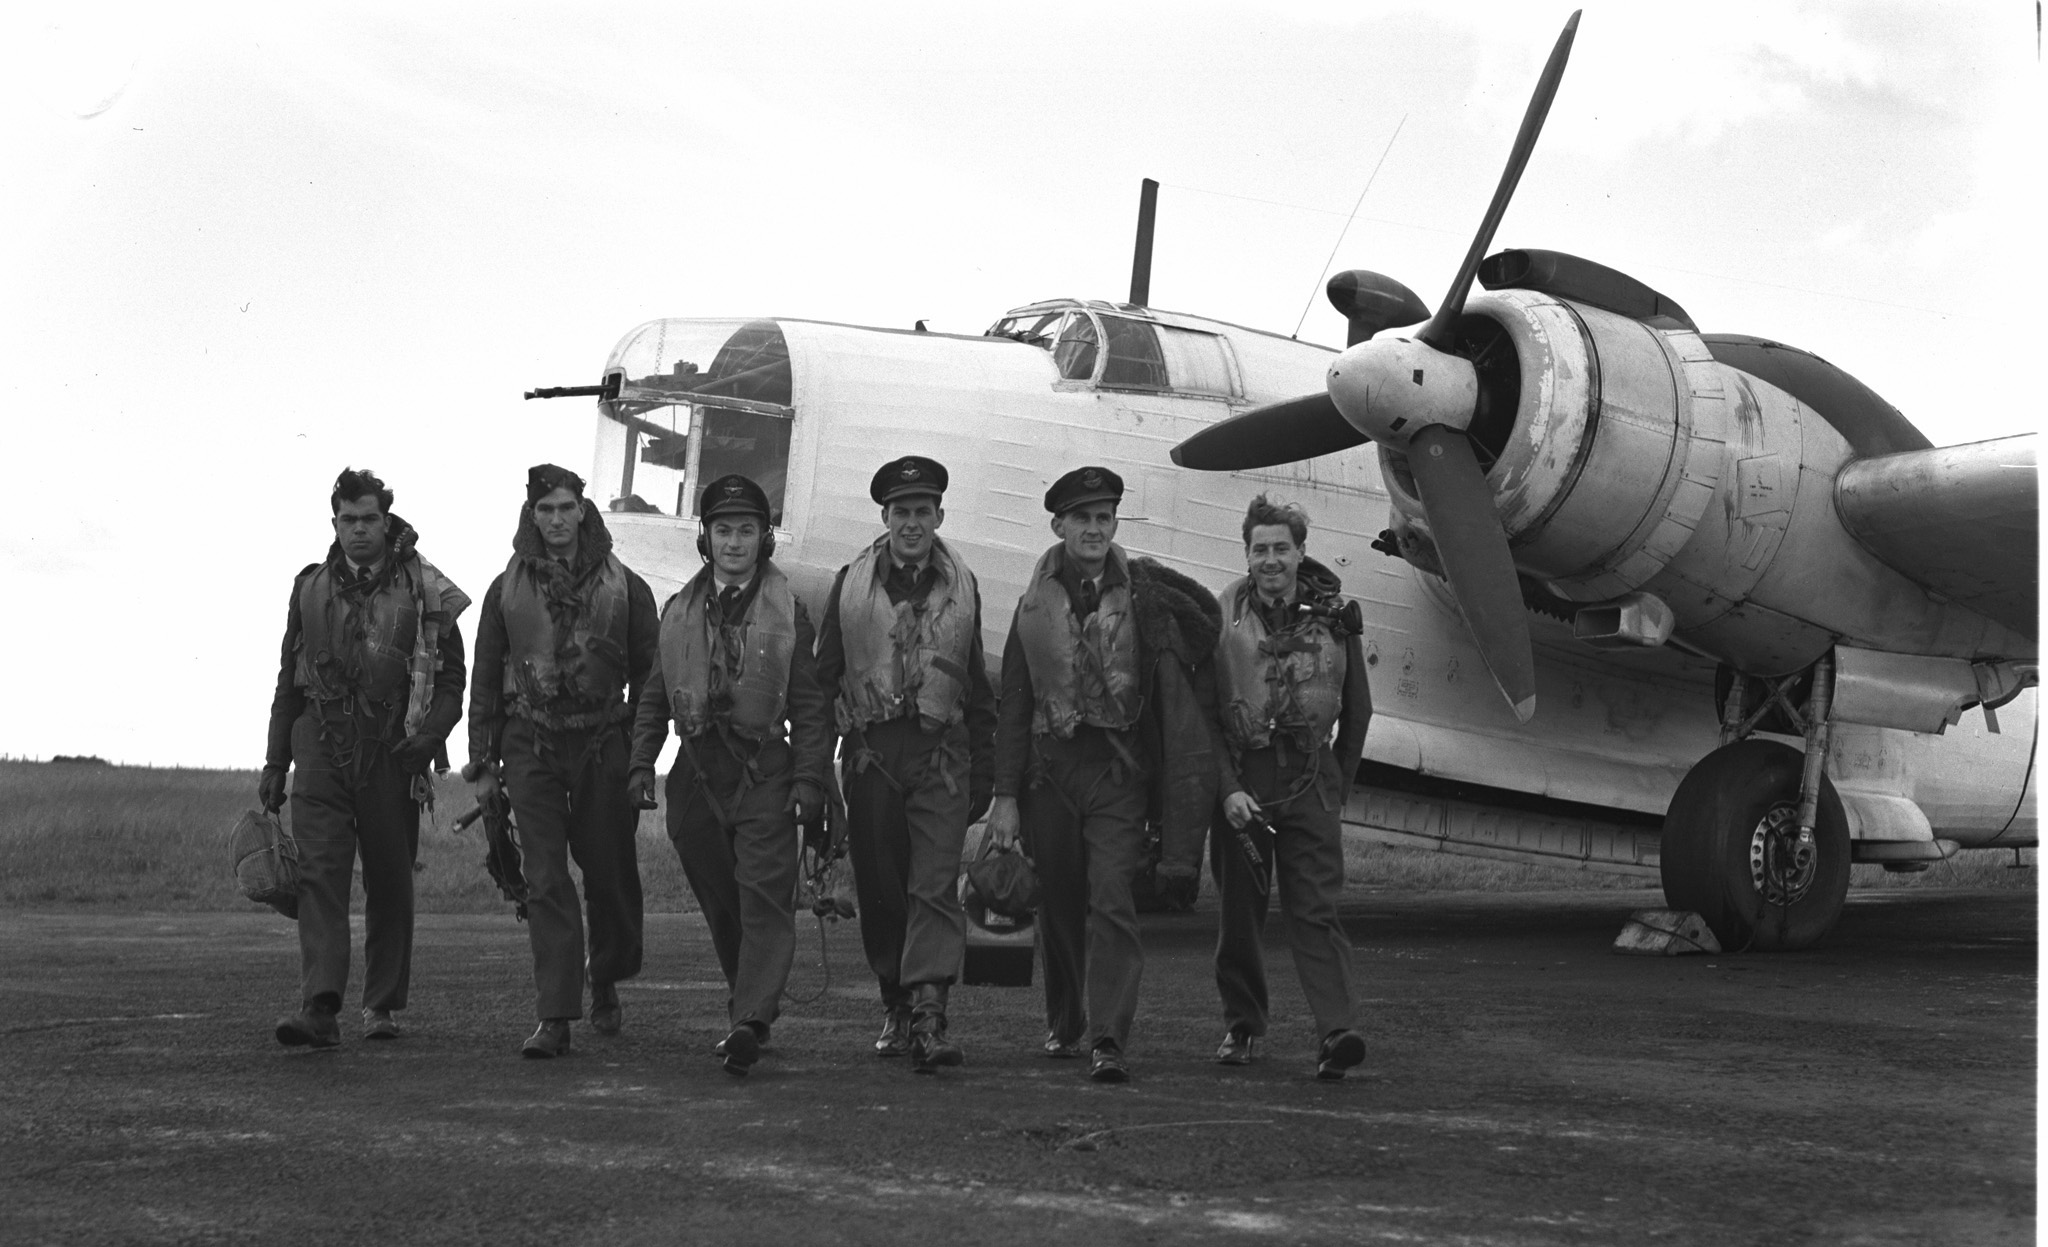 Six men wearing military uniforms and life jackets walk toward the camera, away from a large twin-propeller aircraft.